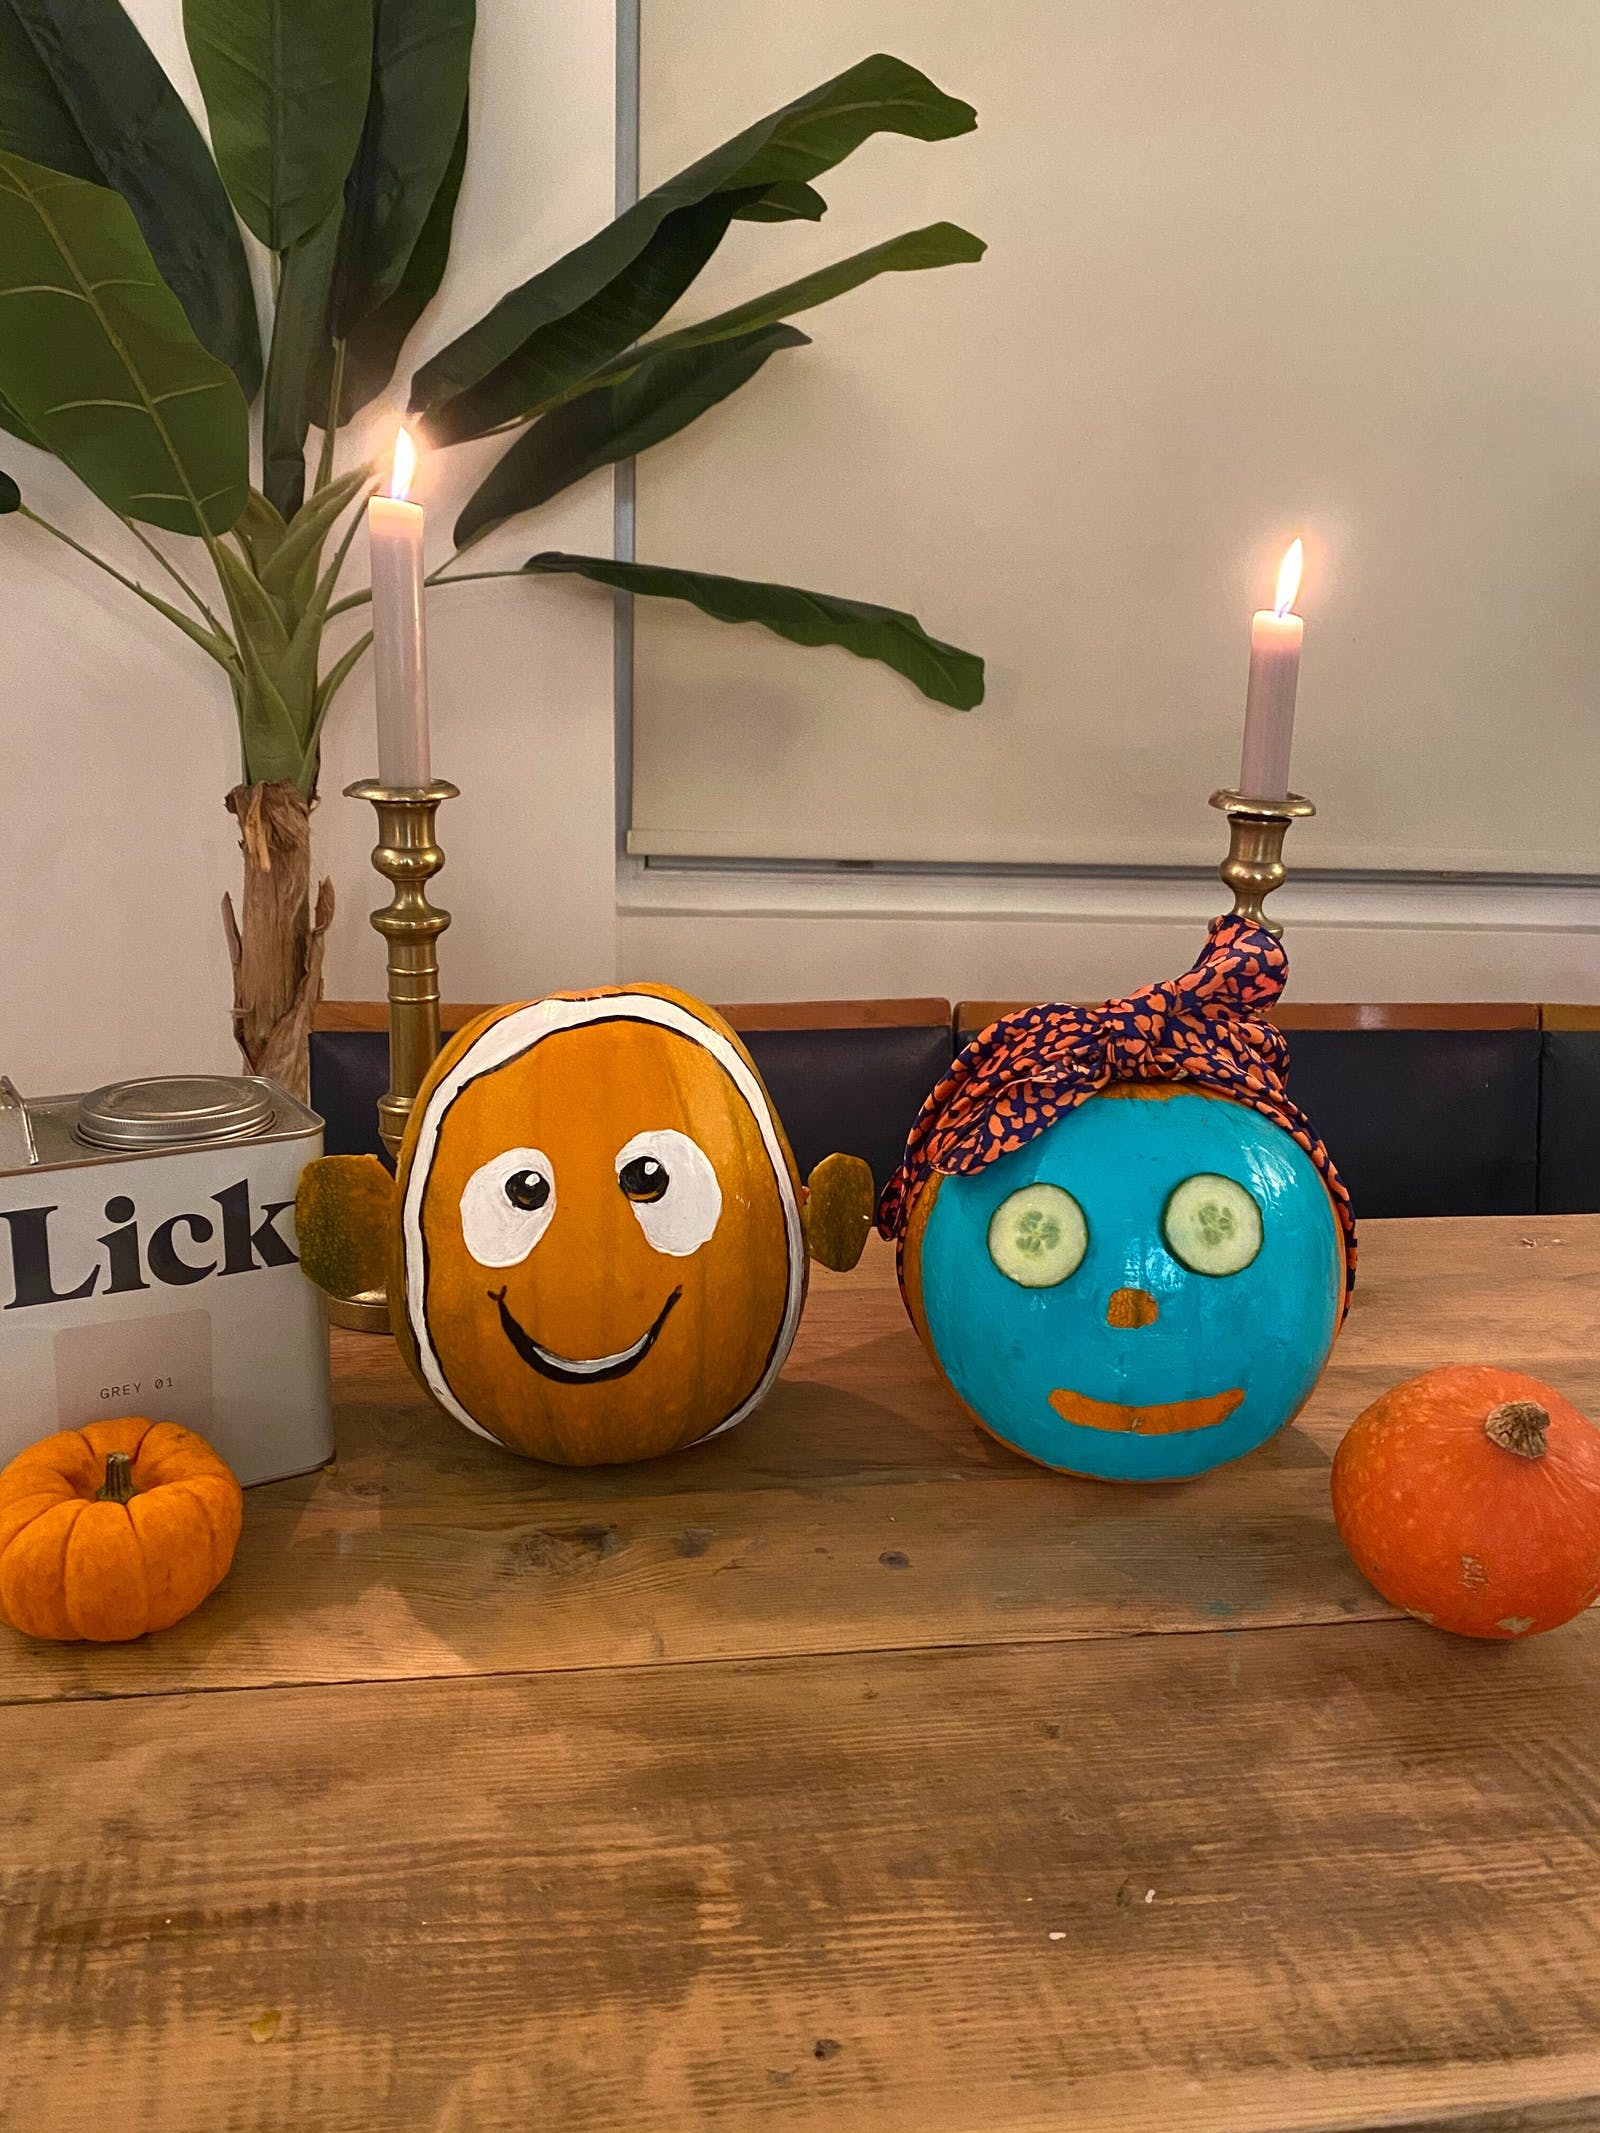 Pumpkins painted as Nemo or a face with cucumbers